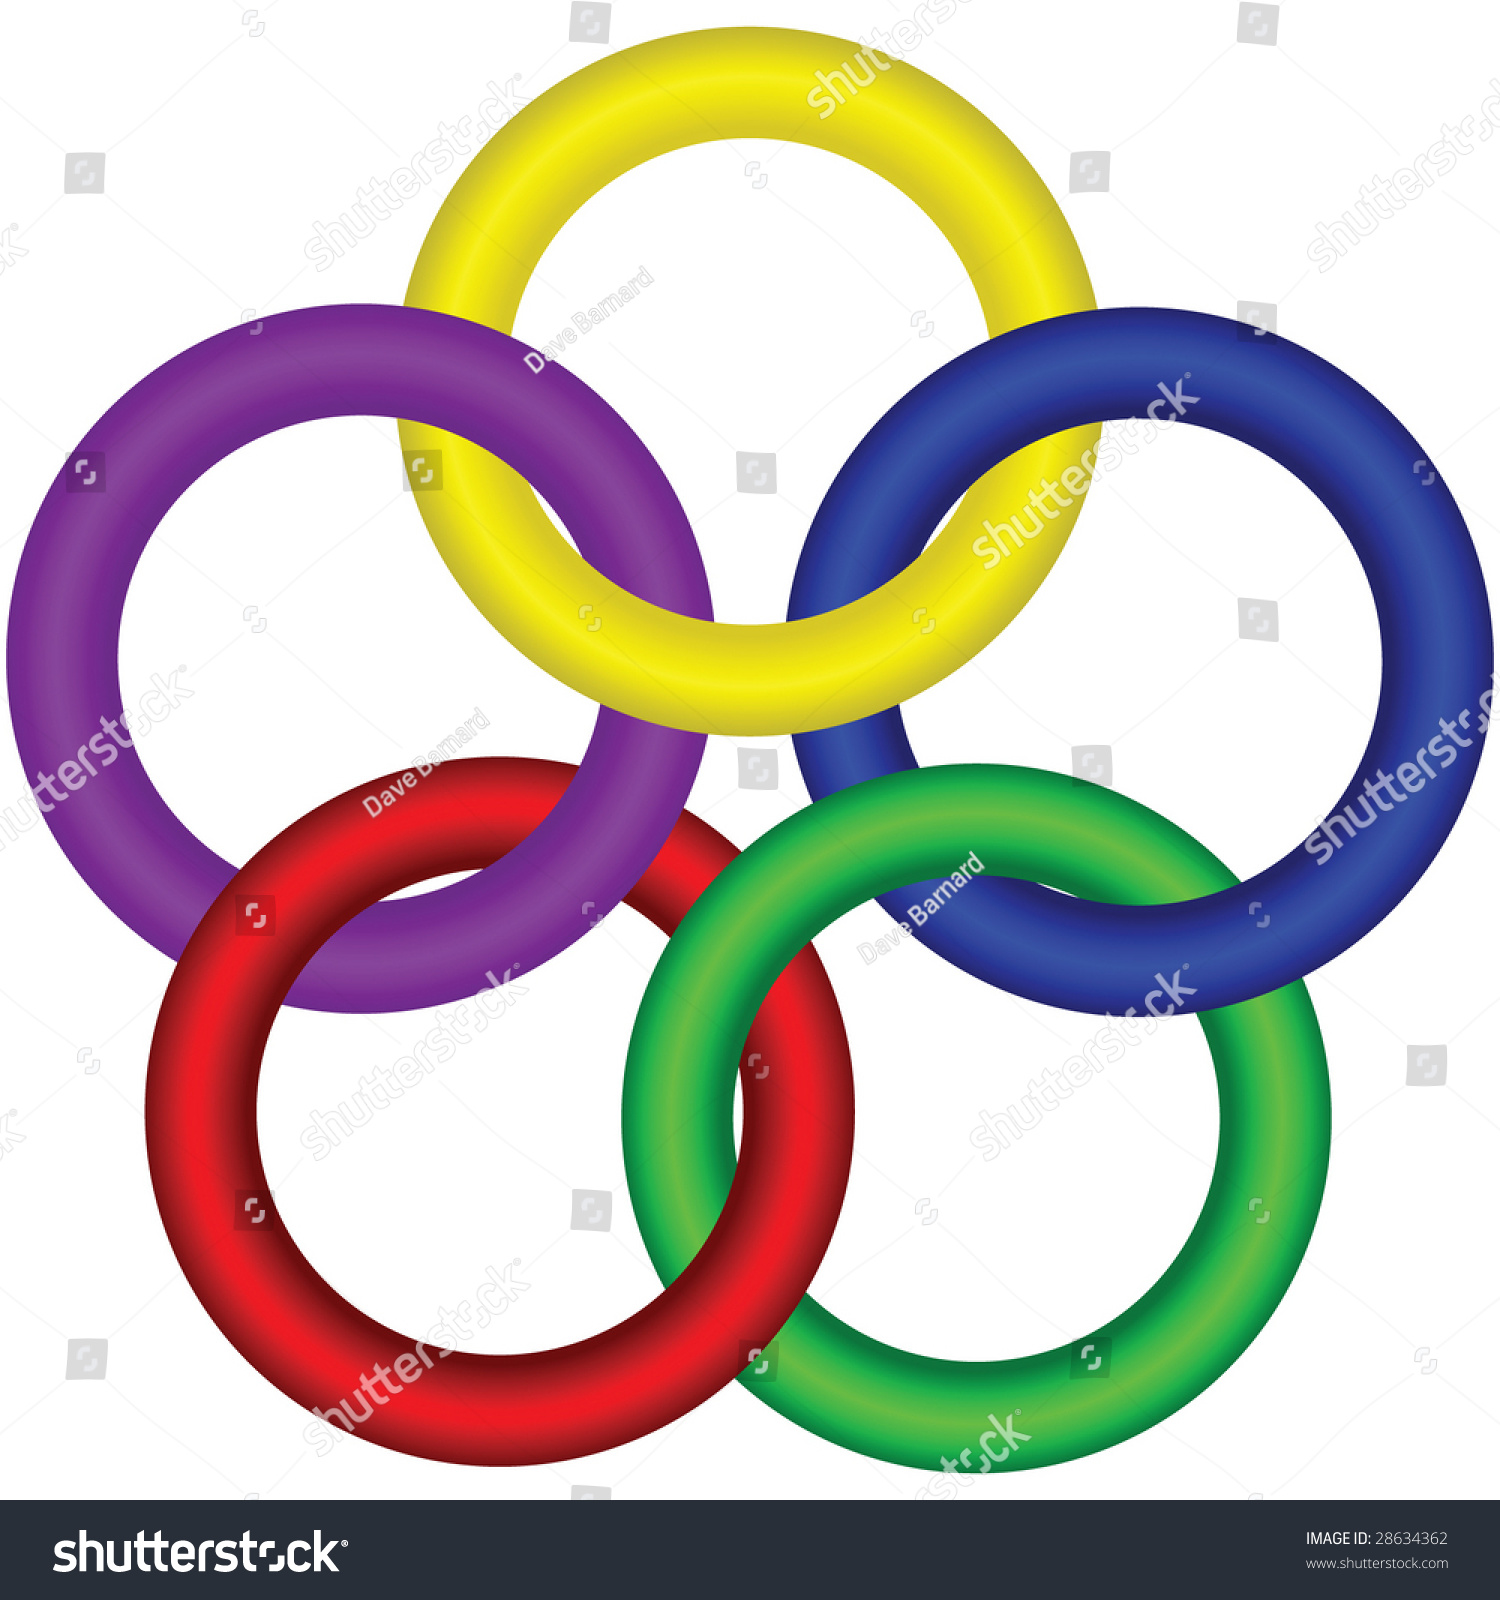 interlocking d rings star shape eps stock vector  interlocking 3d rings in a star shape eps8 file format background on separate layer